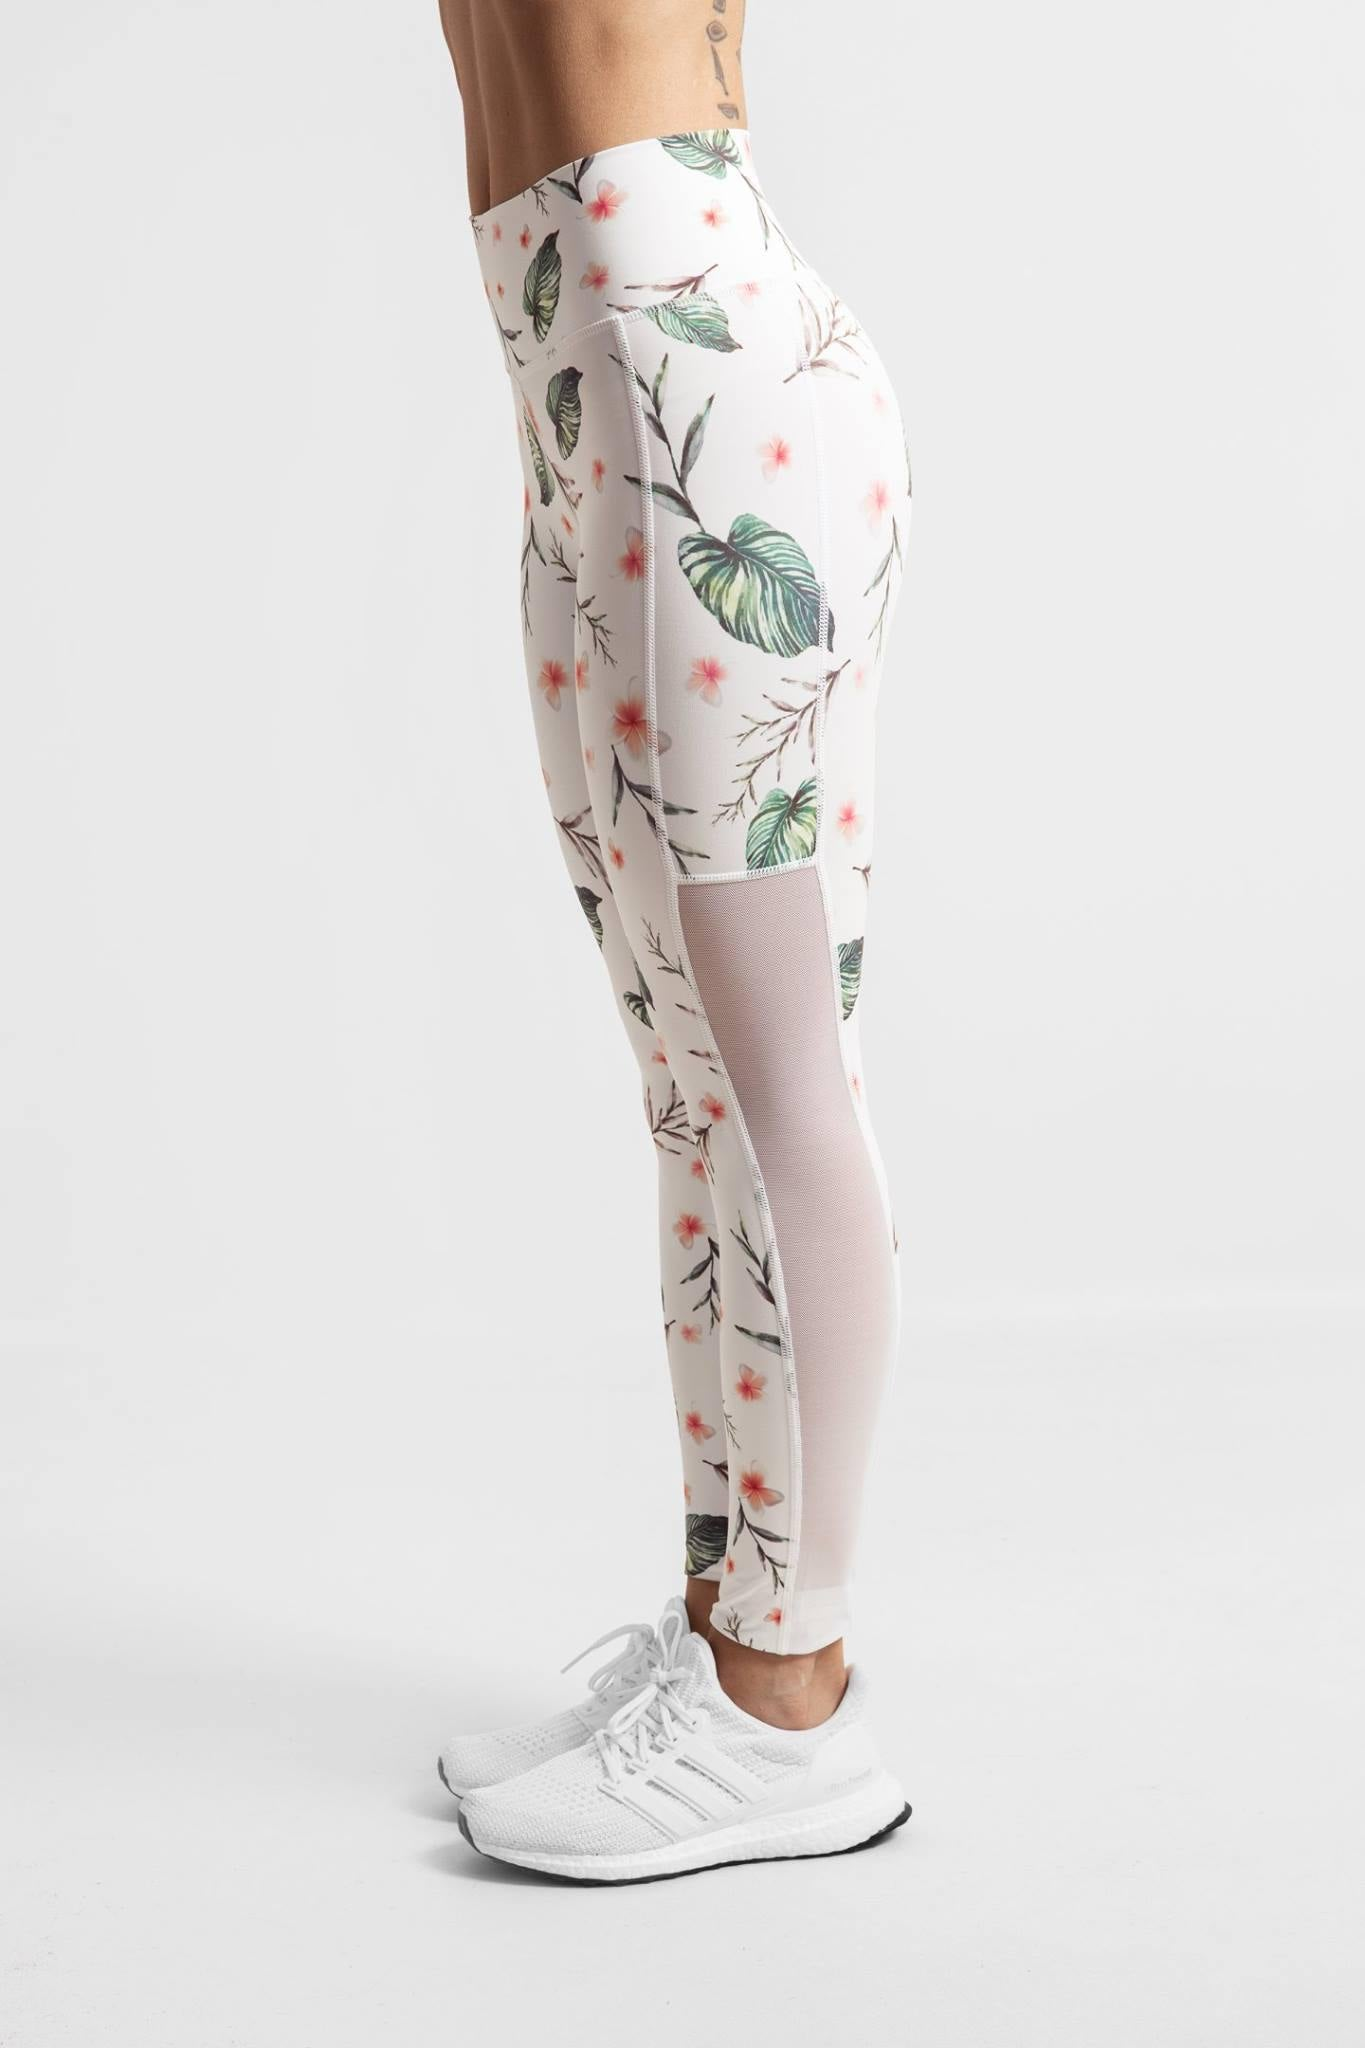 Spring Legging & Top